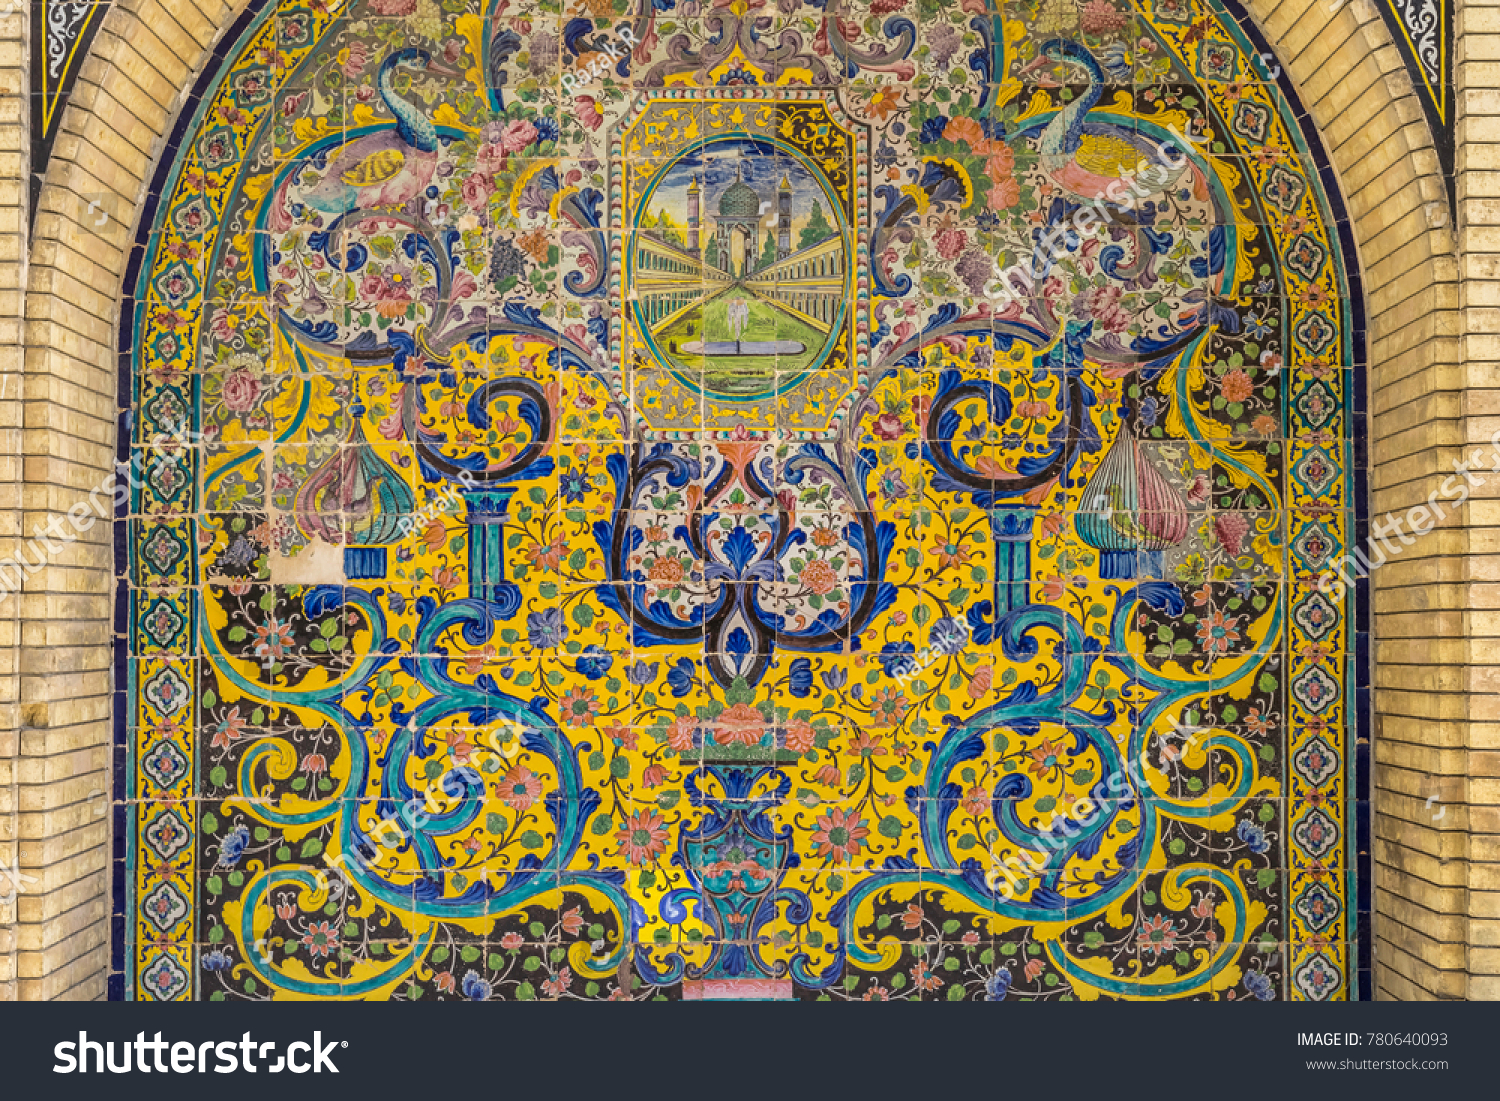 Tehran Iran CIRCA August 2017 View Mosaic Stock Photo & Image ...